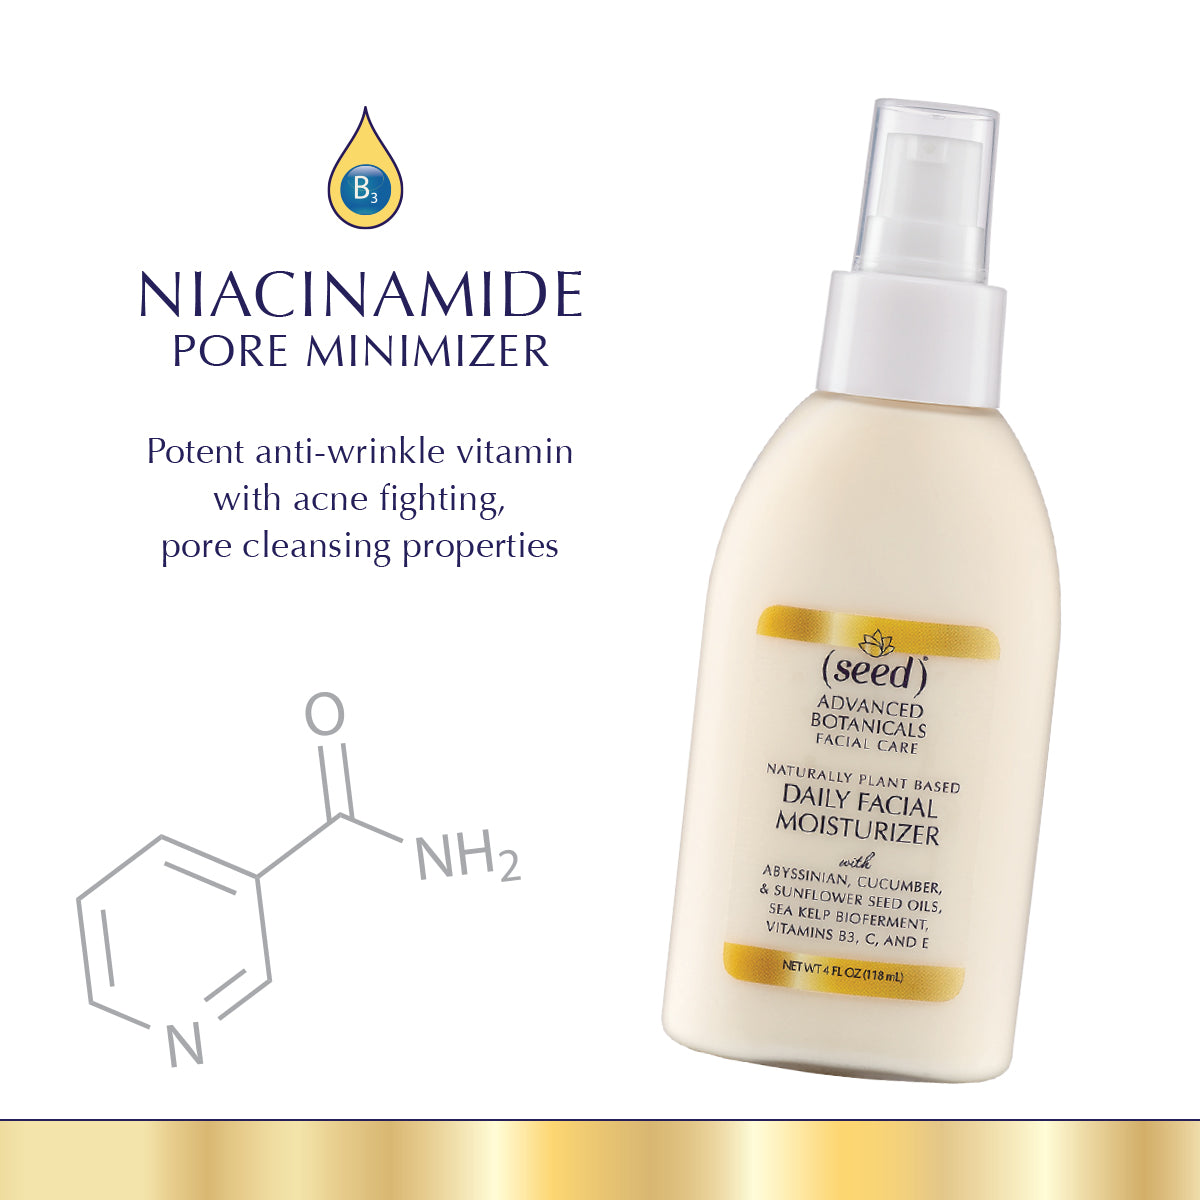 Seed Advanced Botanicals Daily Facial Moisturizing Lotion features Niacinamide